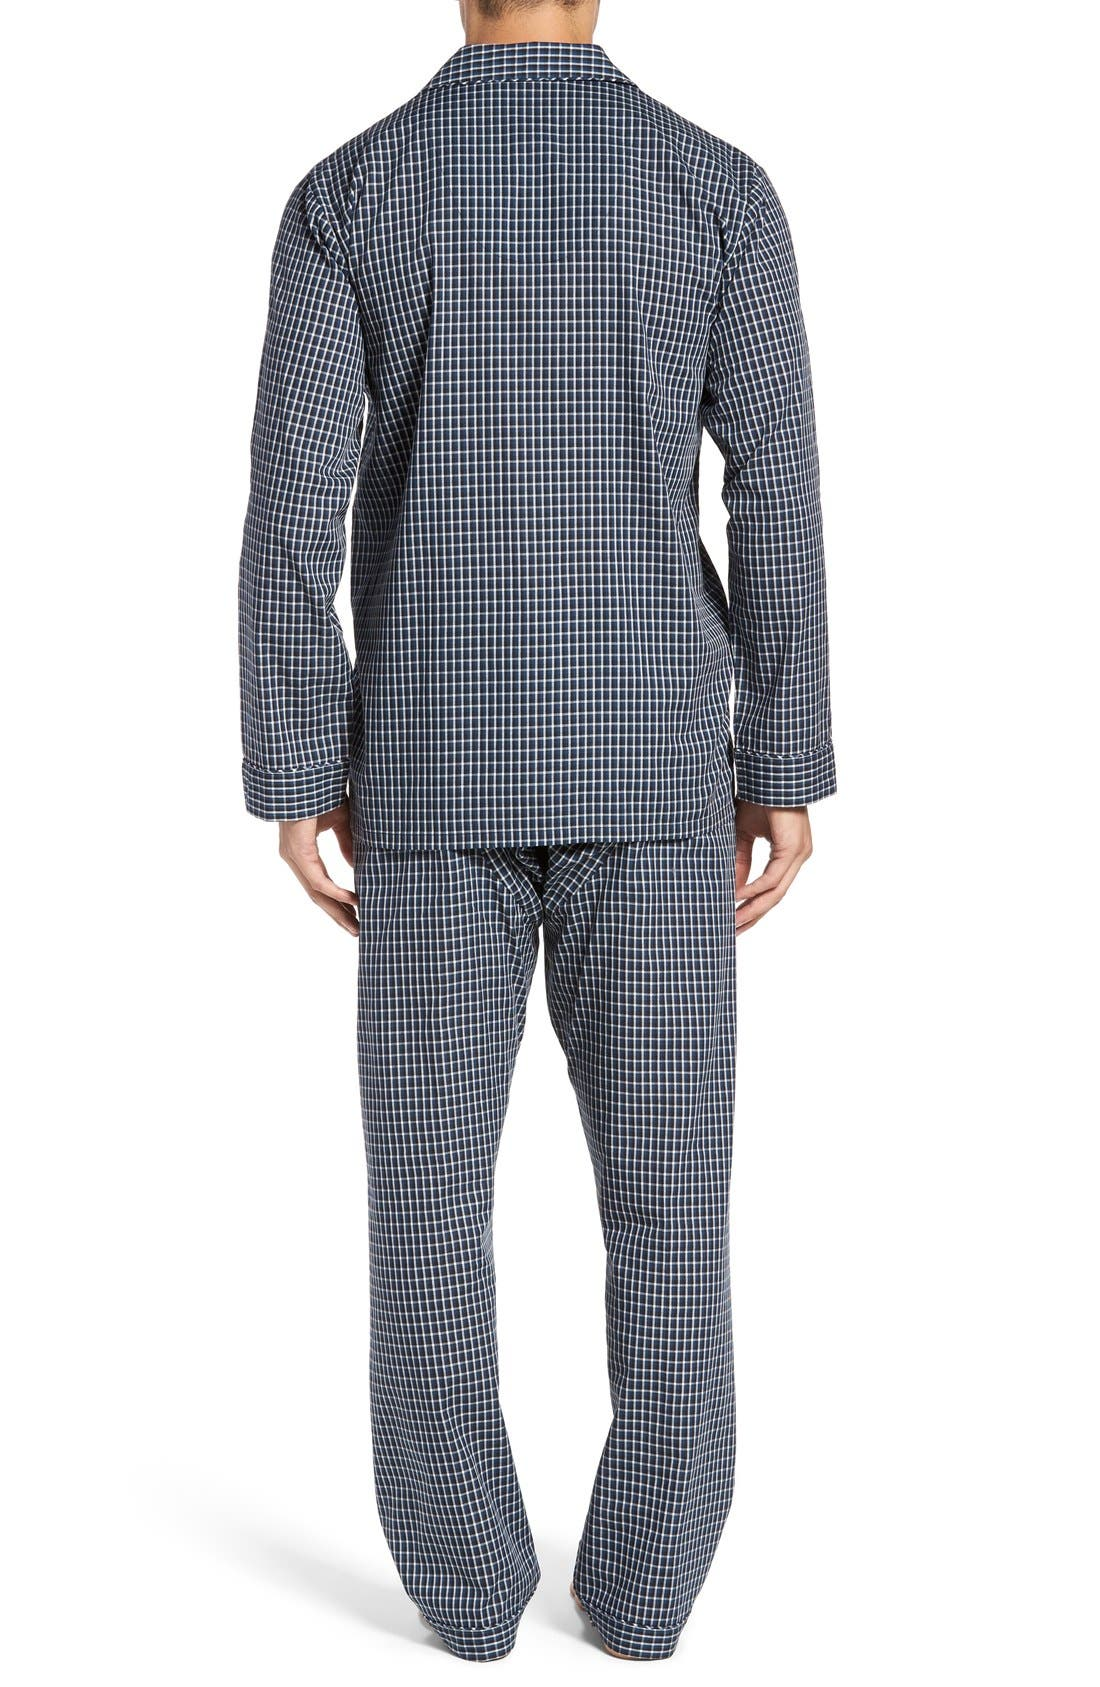 'CVC' Cotton Blend Pajamas,                             Alternate thumbnail 2, color,                             001